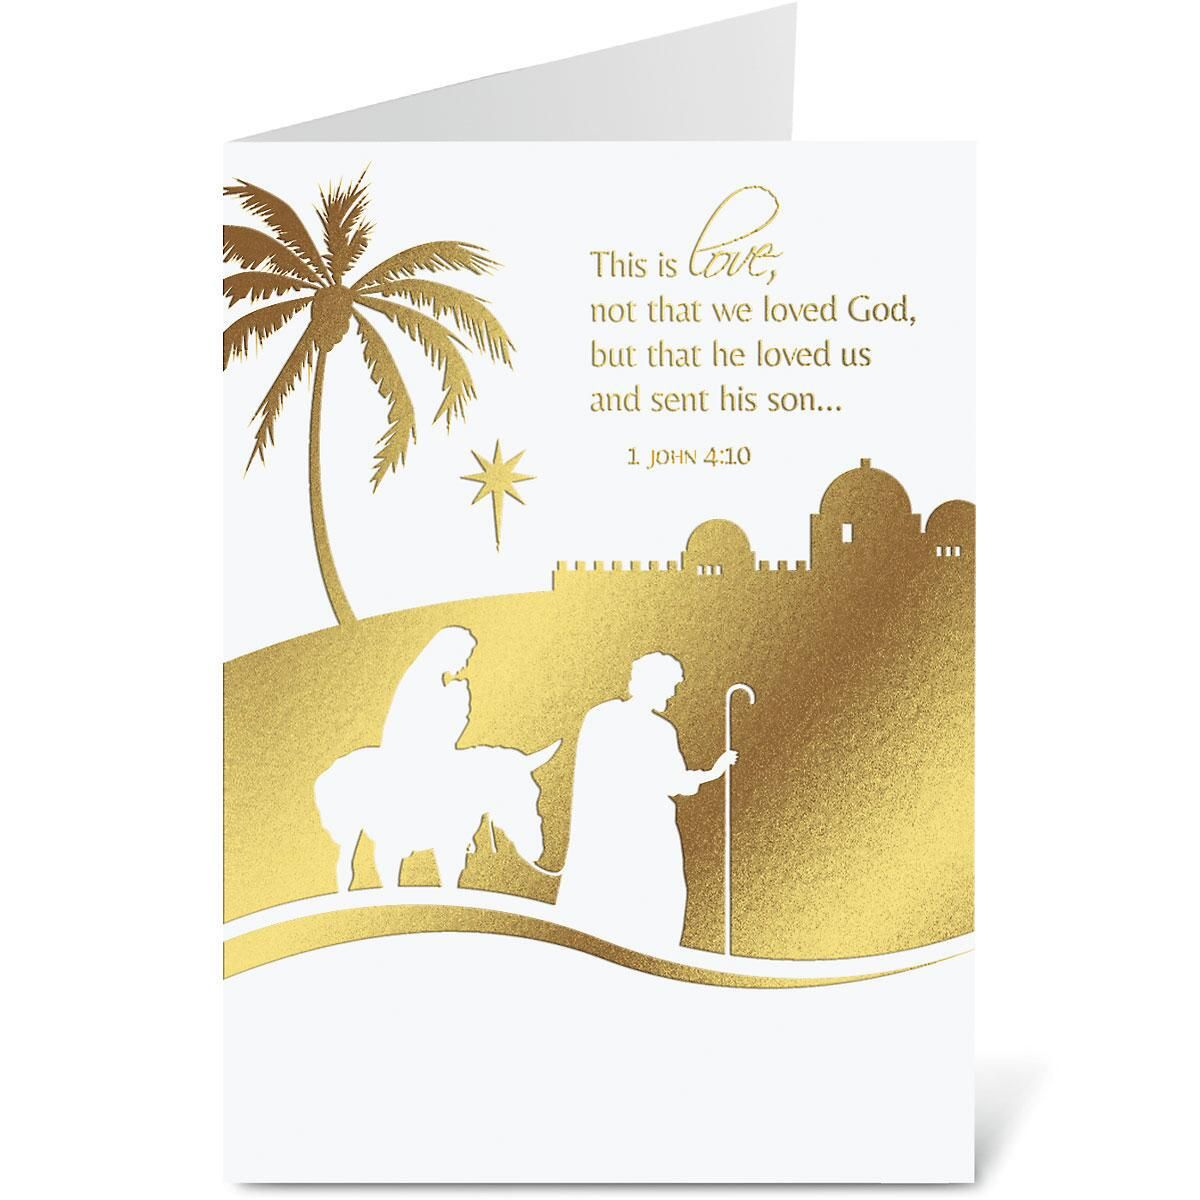 Nativity Personalized Deluxe Christmas Cards - Set of 56